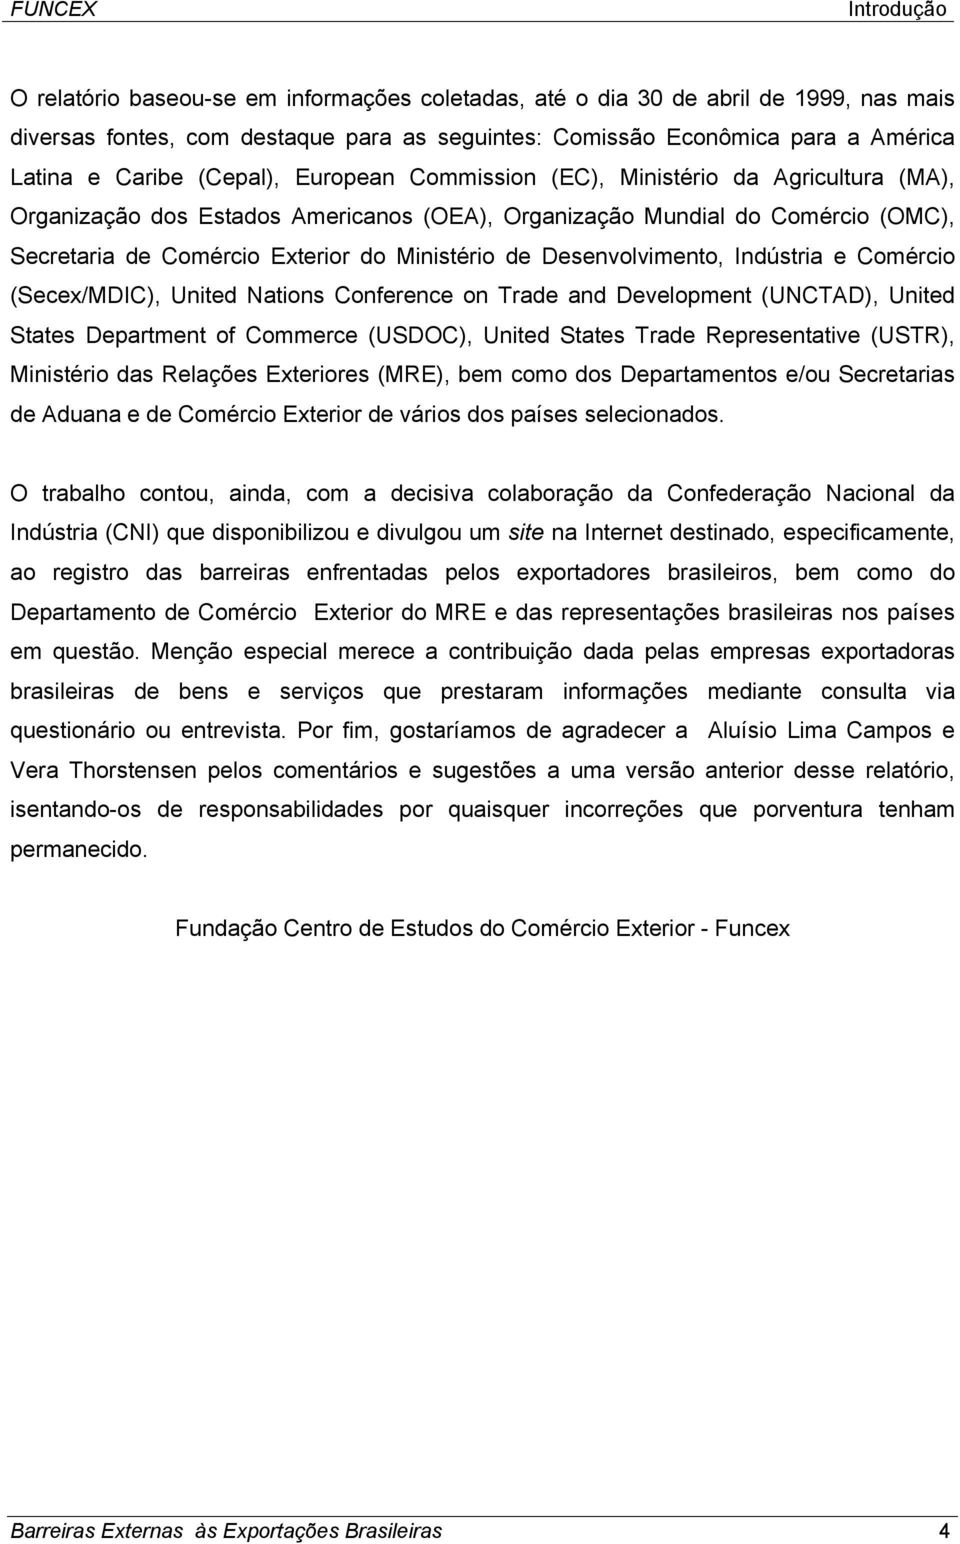 Desenvolvimento, Indústria e Comércio (Secex/MDIC), United Nations Conference on Trade and Development (UNCTAD), United States Department of Commerce (USDOC), United States Trade Representative